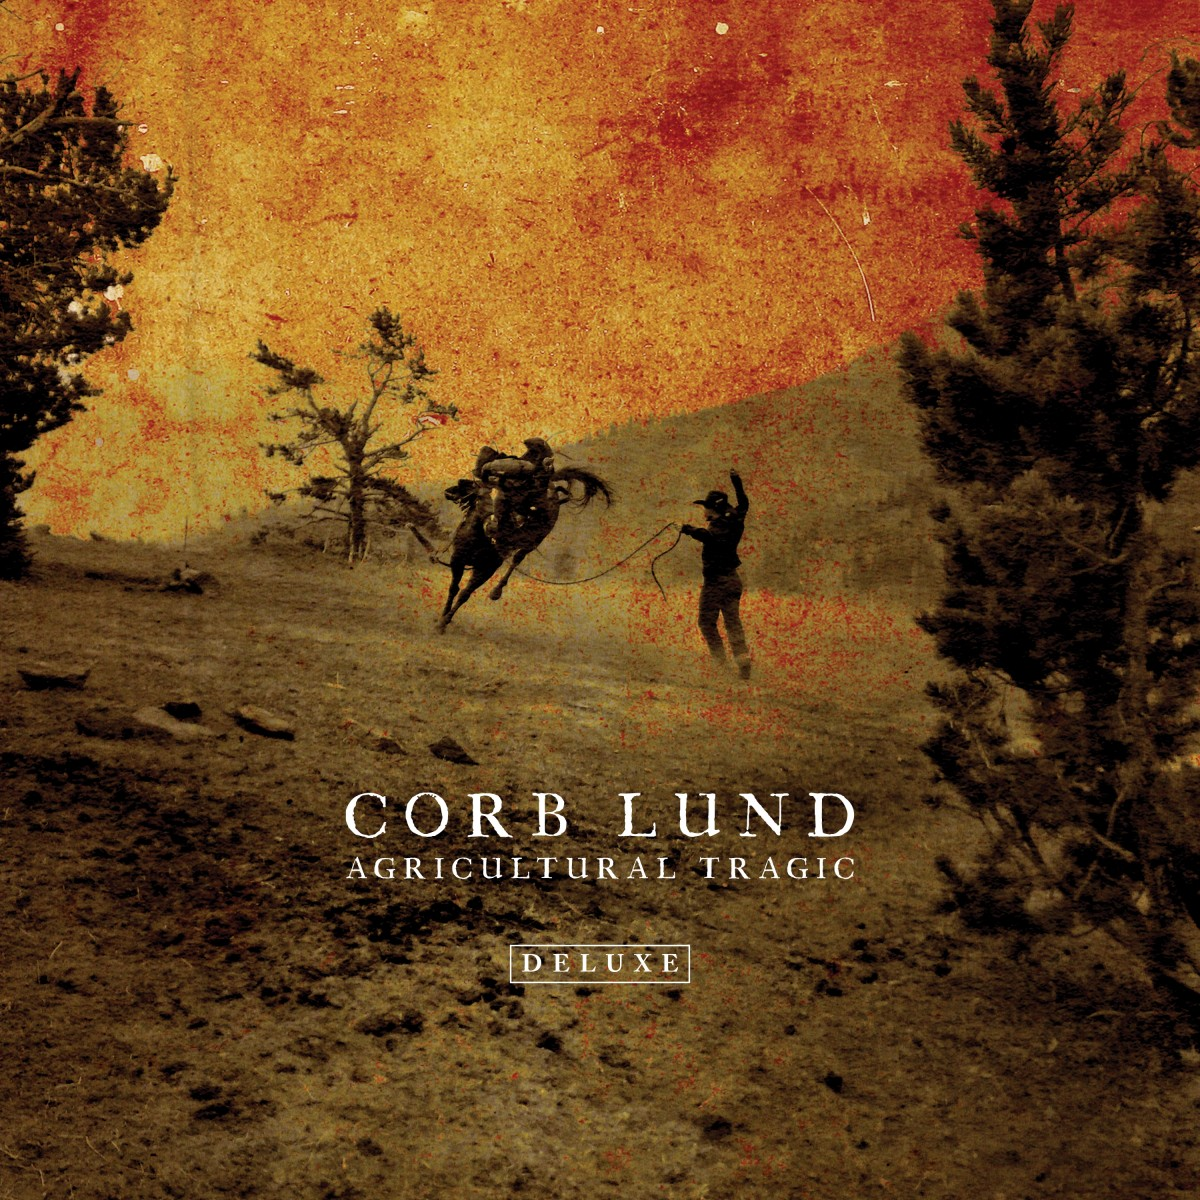 Corb Lund has Announced that the Deluxe Edition of his Critically-acclaimed Studio Album Agricultural Tragic will be Released on March 19.